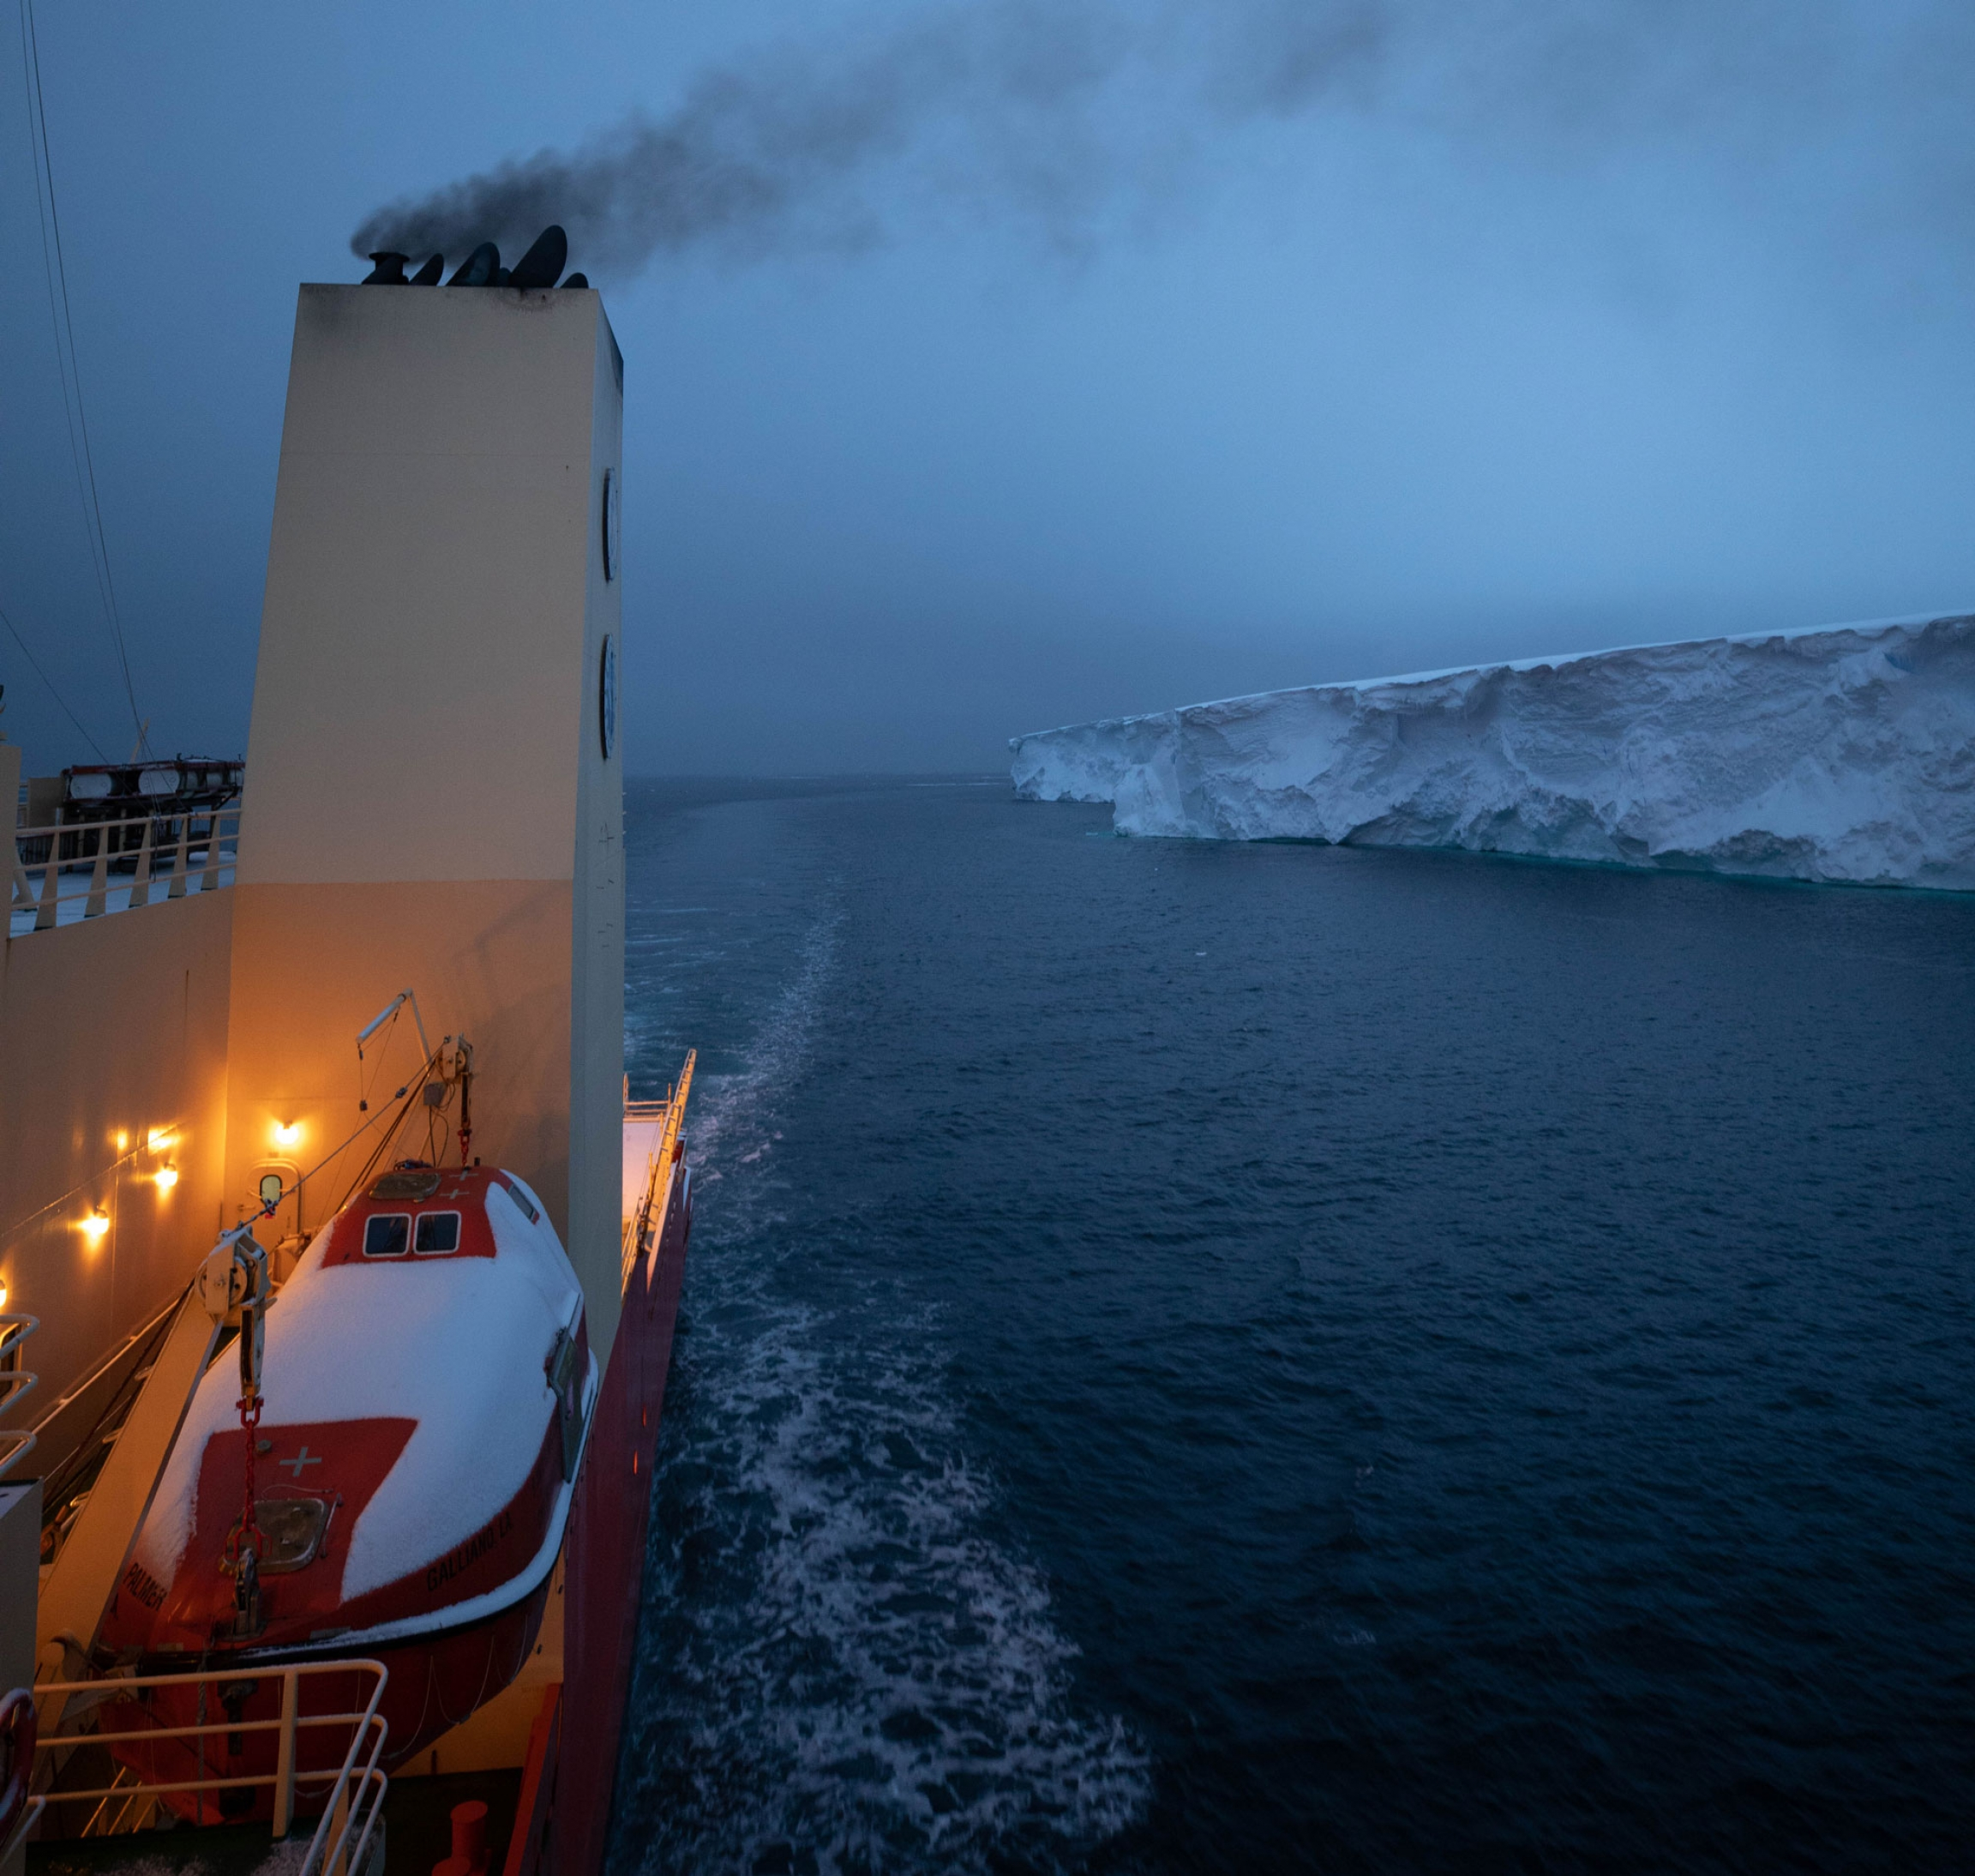 From the side of the vessel, the Nathaniel B. Palmer is shown with a smoke stack in the nearground, navigating along the eastern tongue of Thwaites glacier.